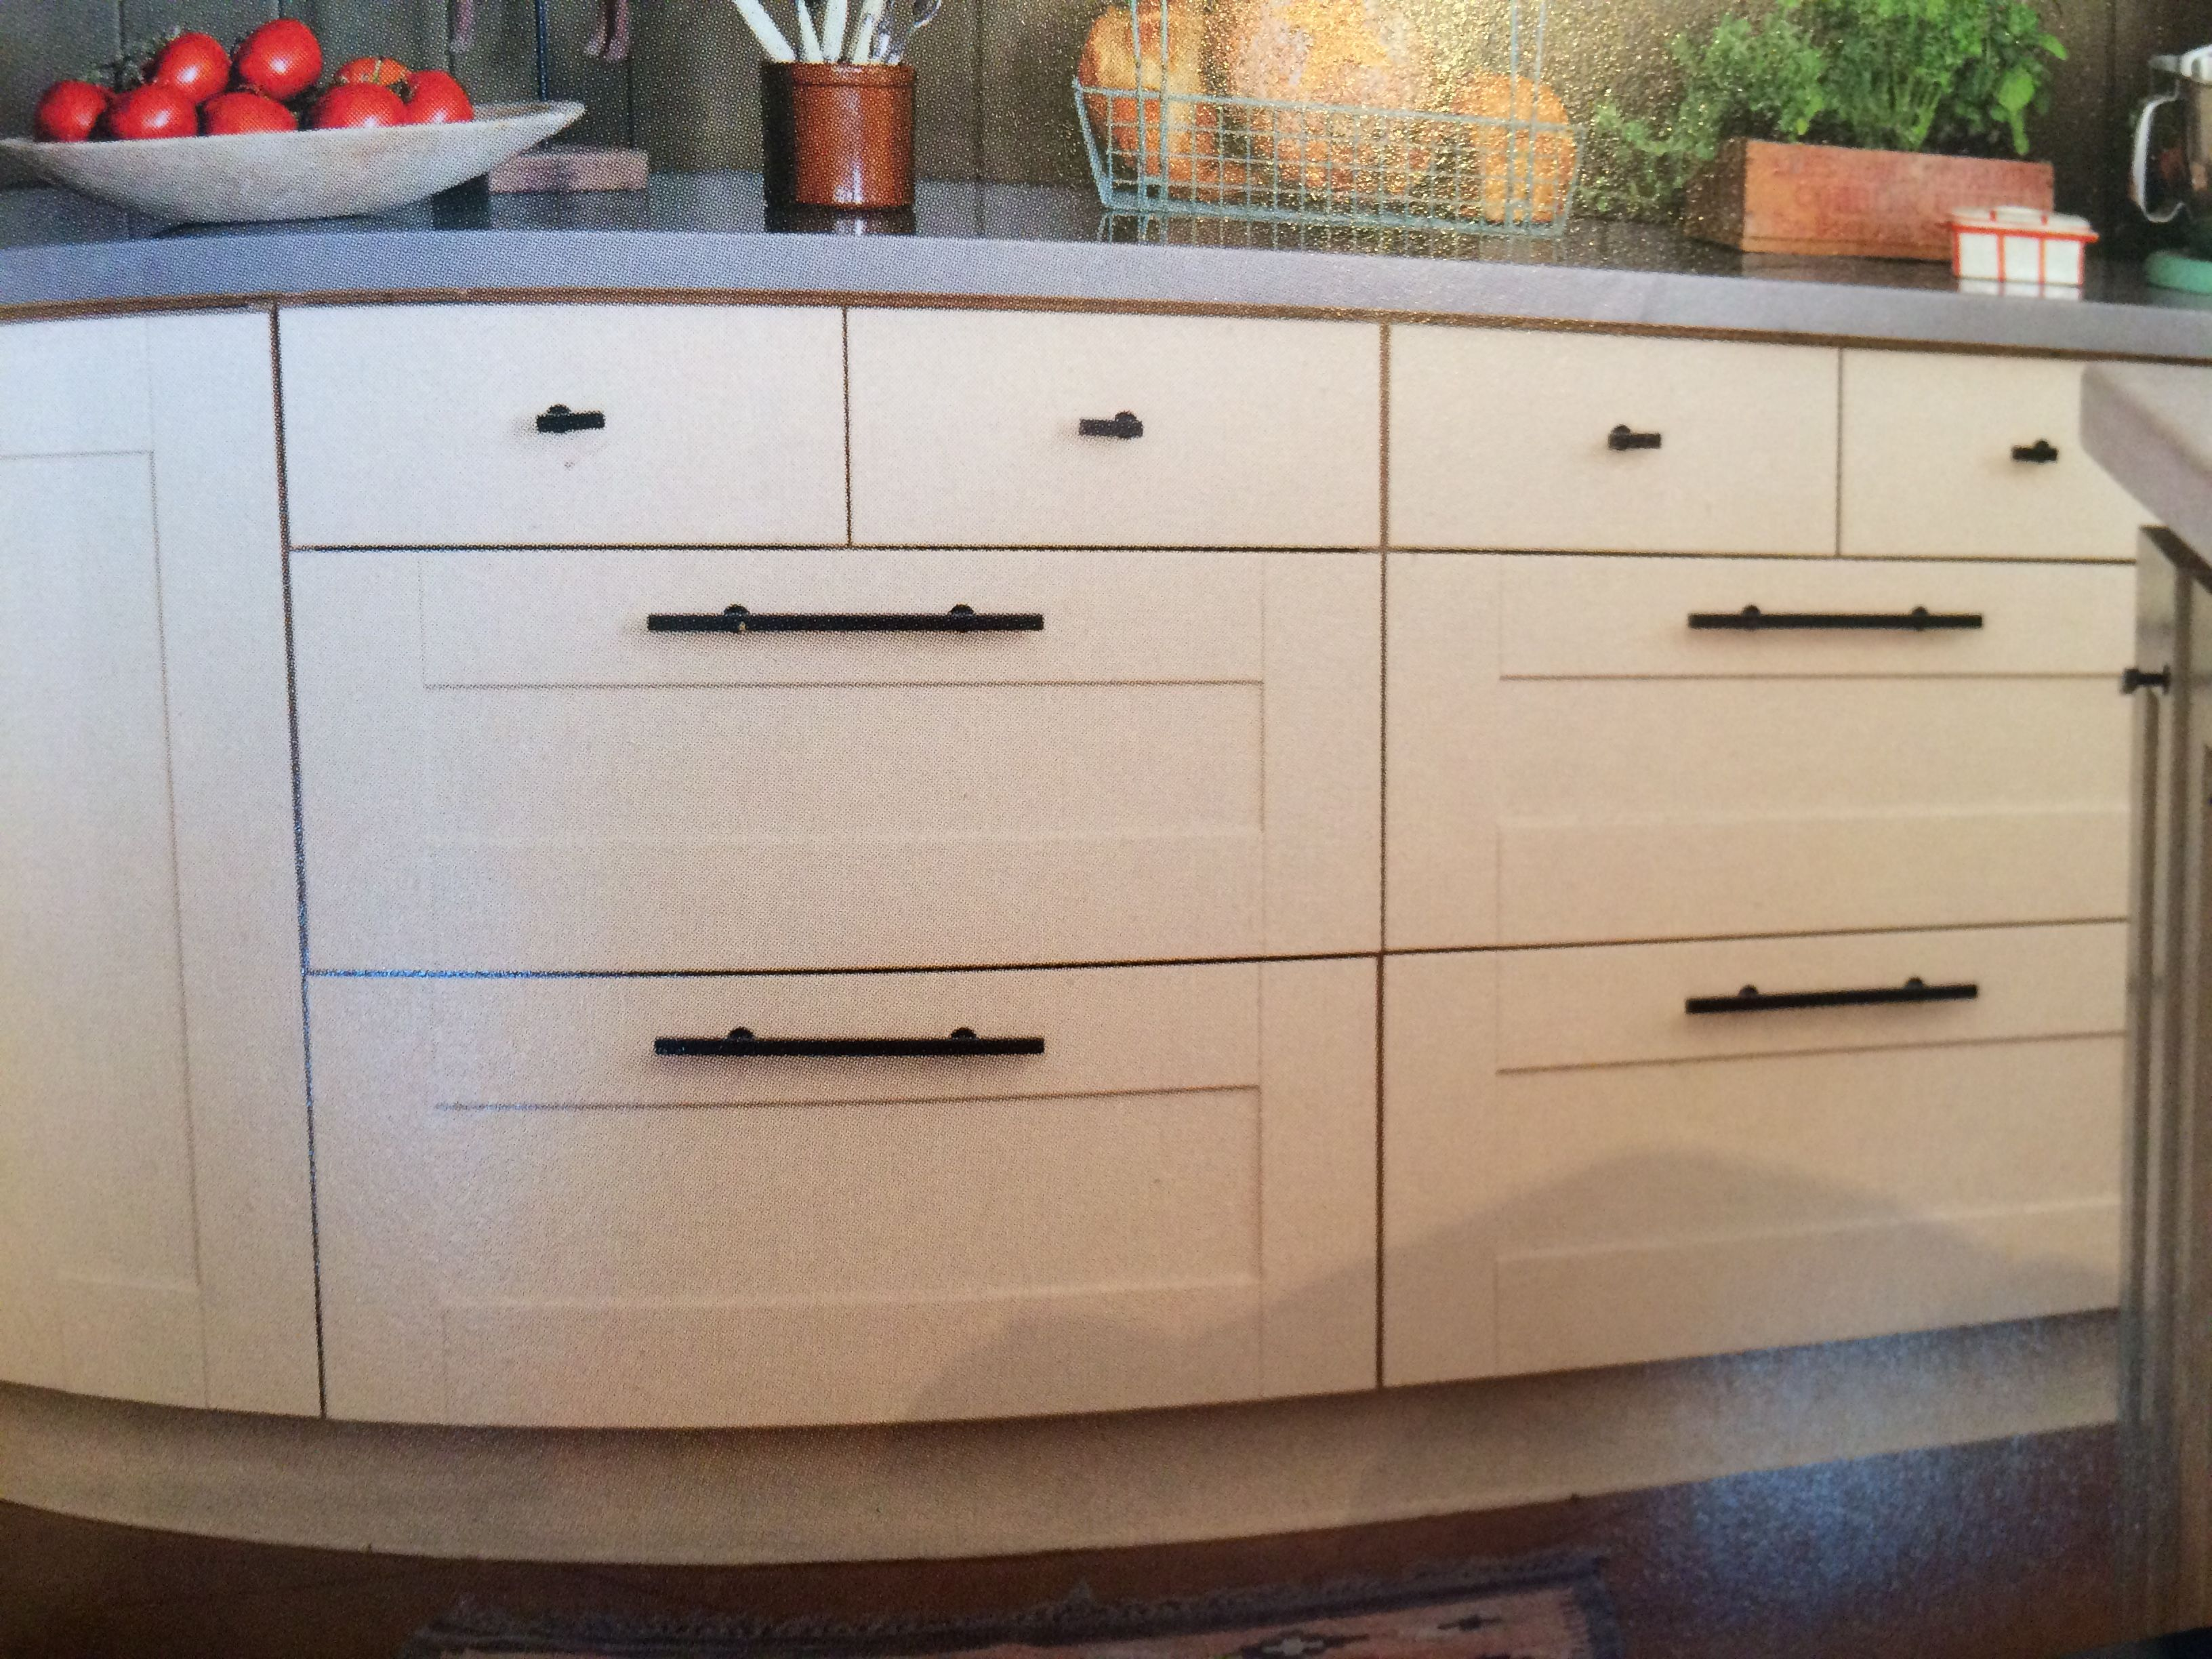 Large Drawers Instead Of Cabinets Kitchen Design Kitchen Cabinet